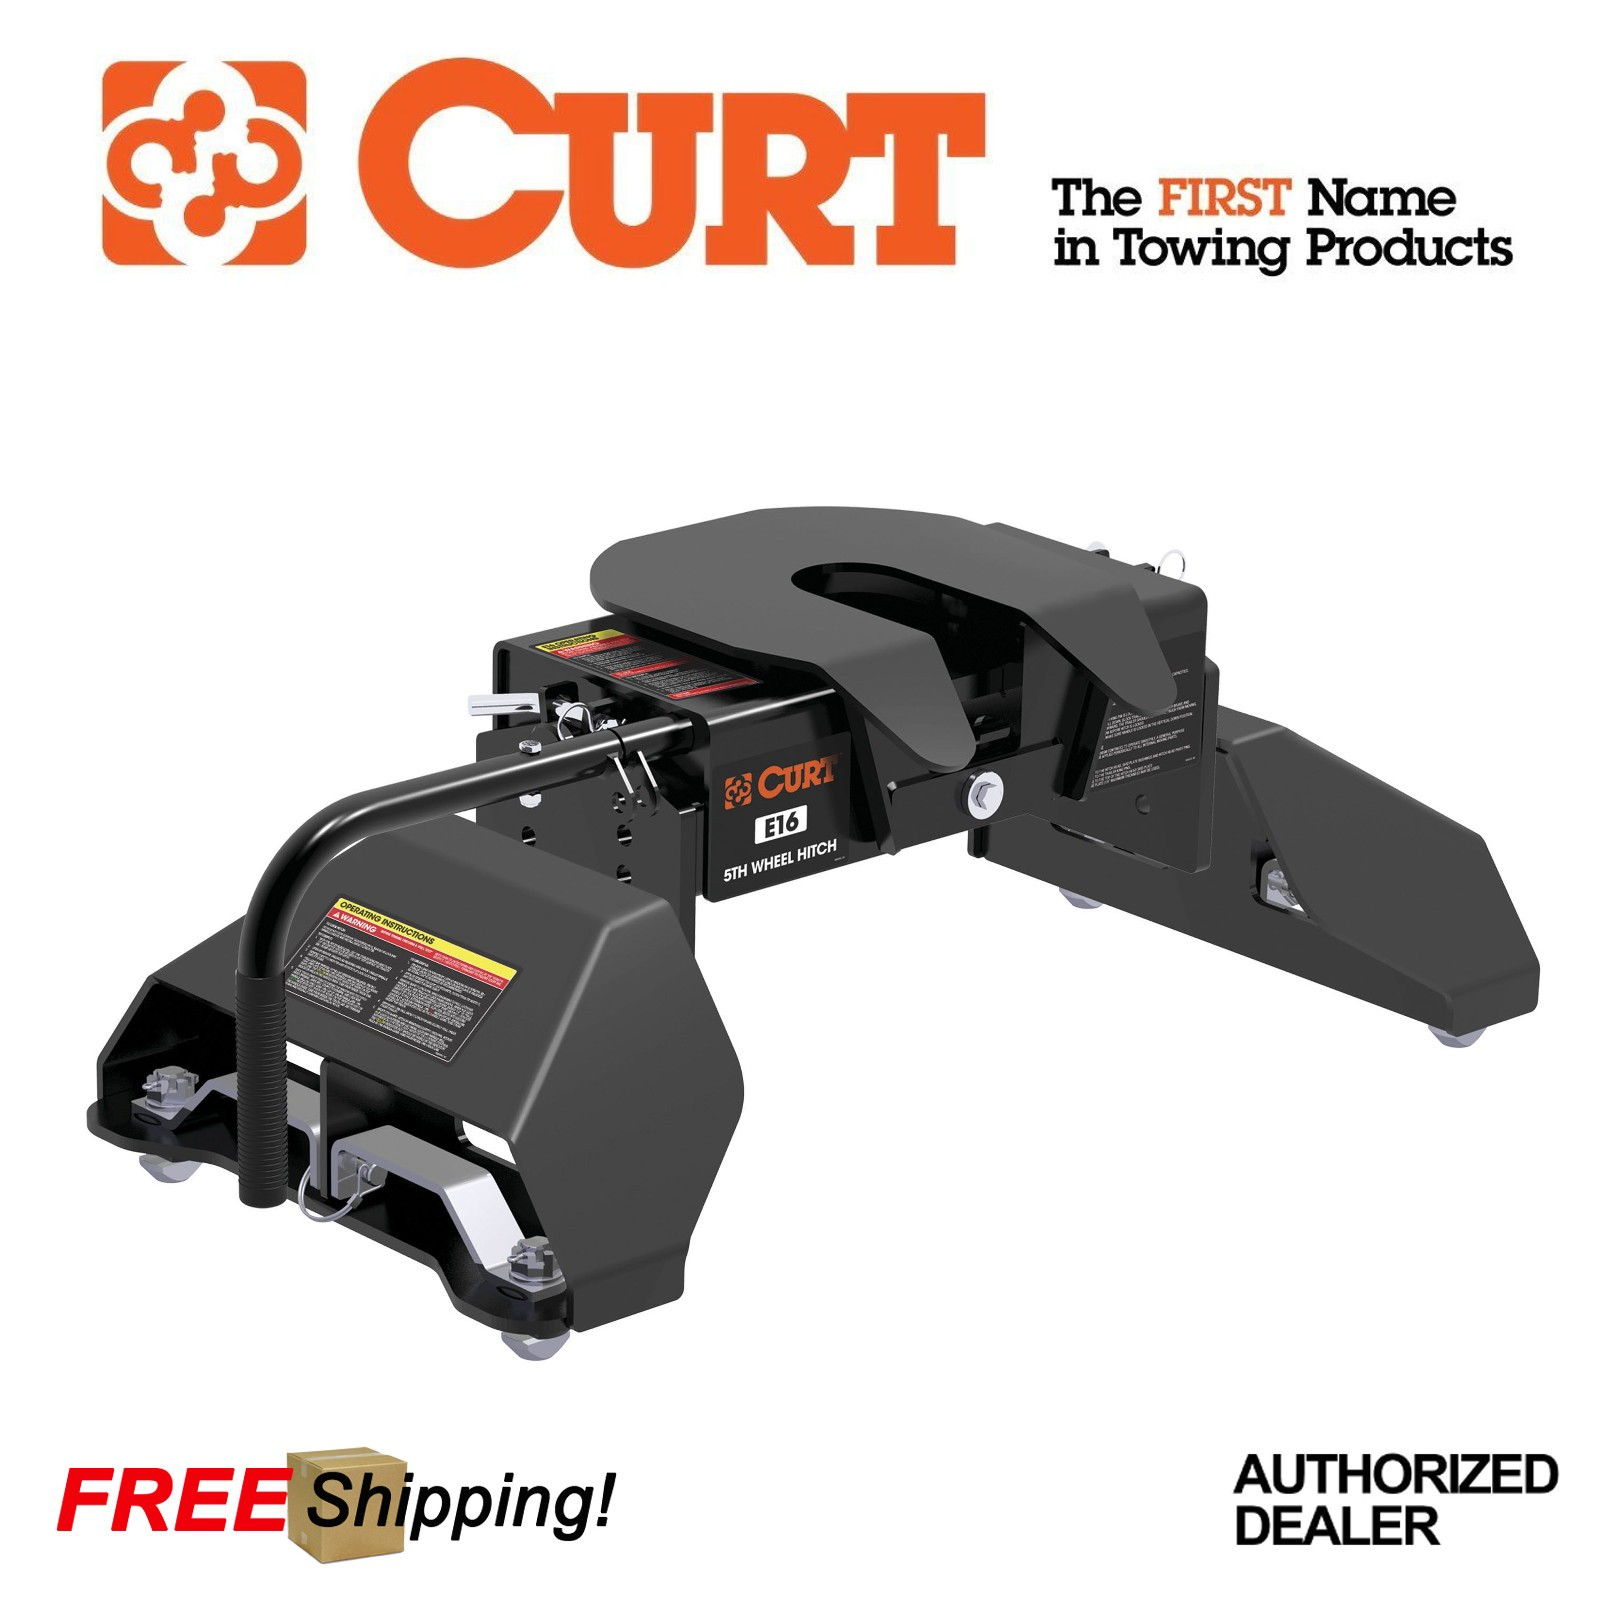 Details About Curt Manufacturing E16 5th Wheel Hitch For 11 19 Ford F250 F350 With Puck System